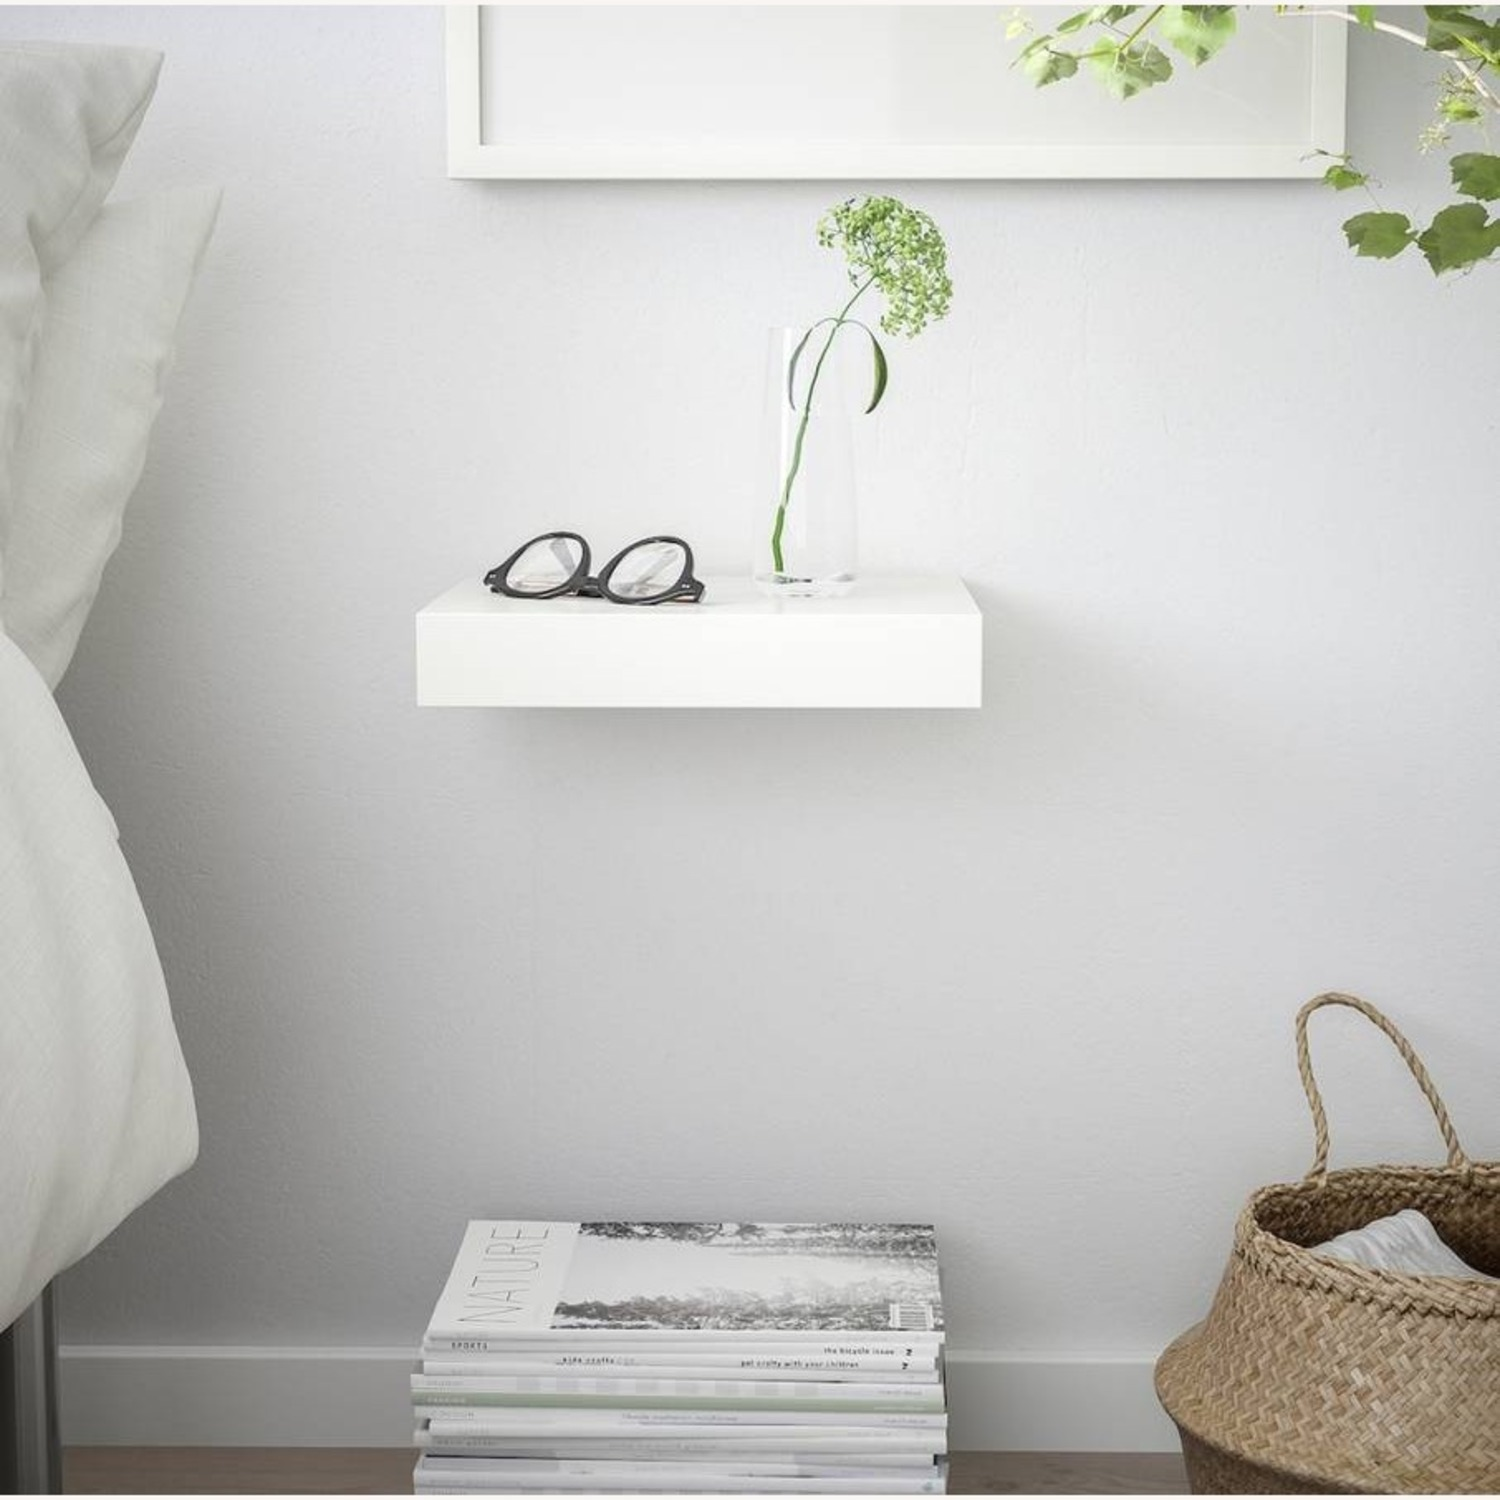 Ikea Floating Shelf - image-1